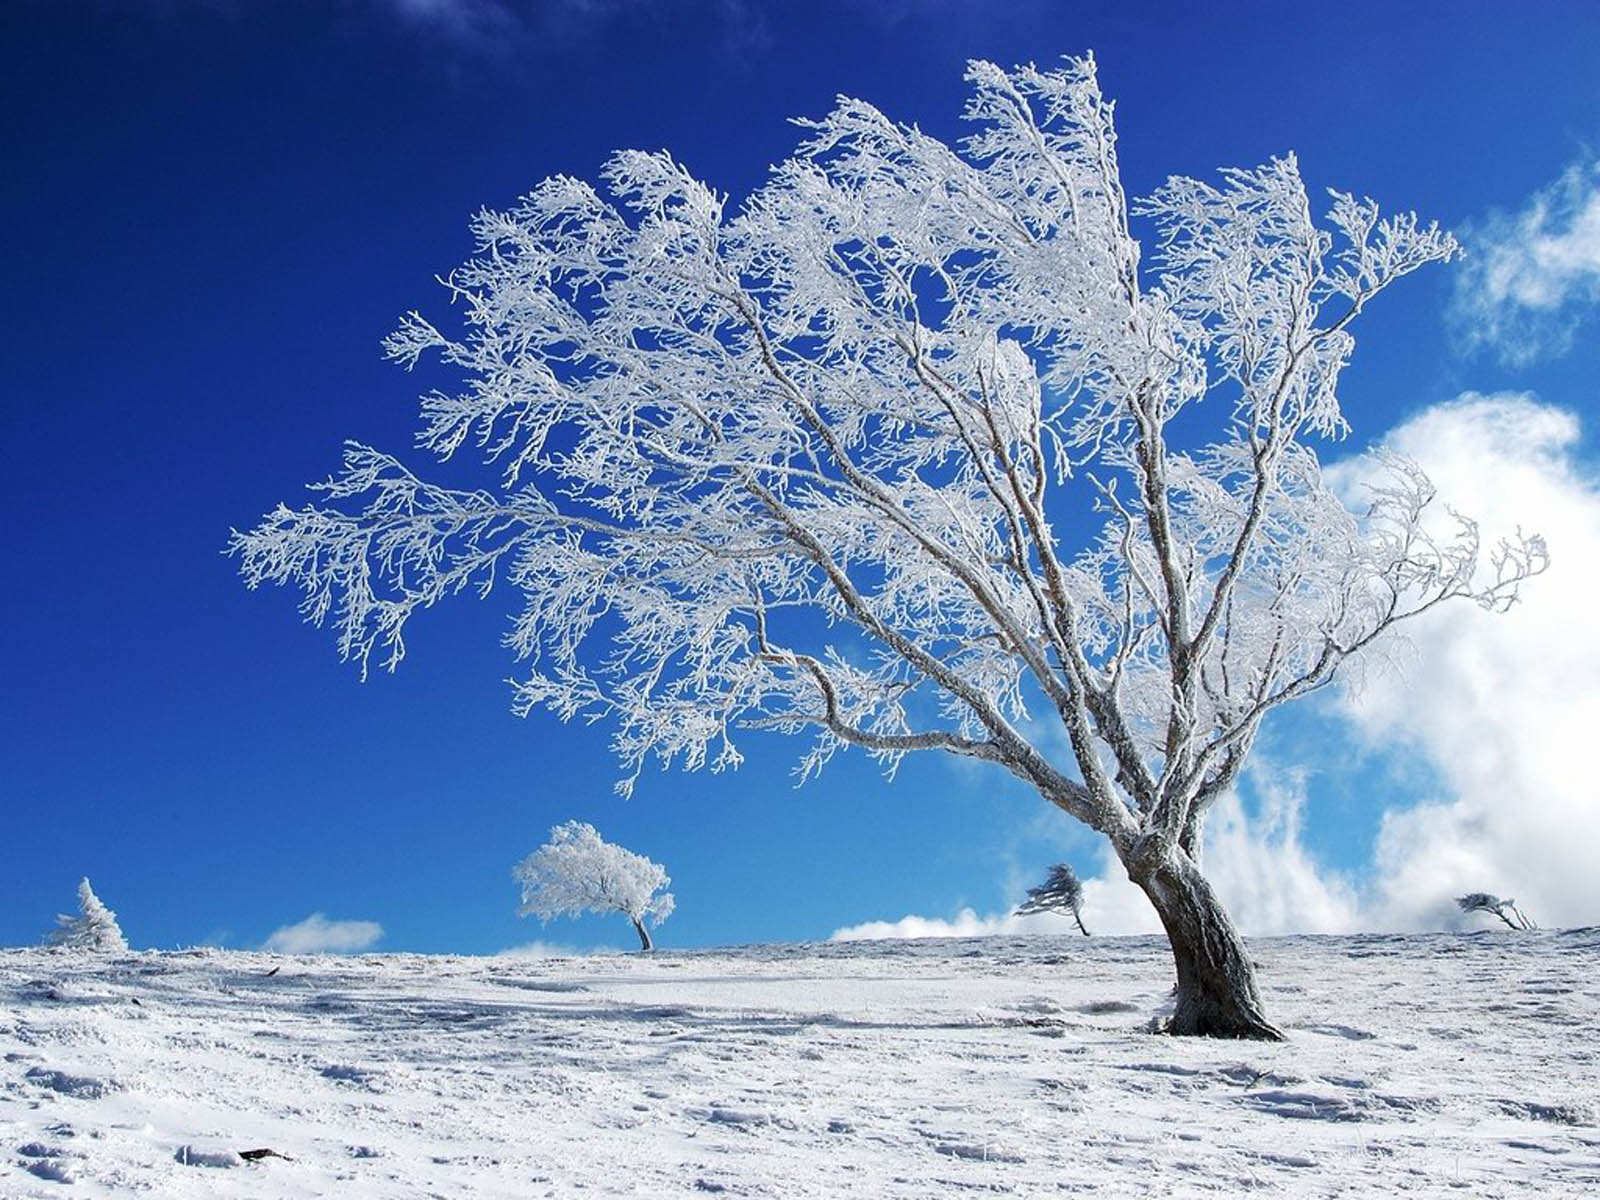 Winter Wallpapers Backgrounds And Pictures